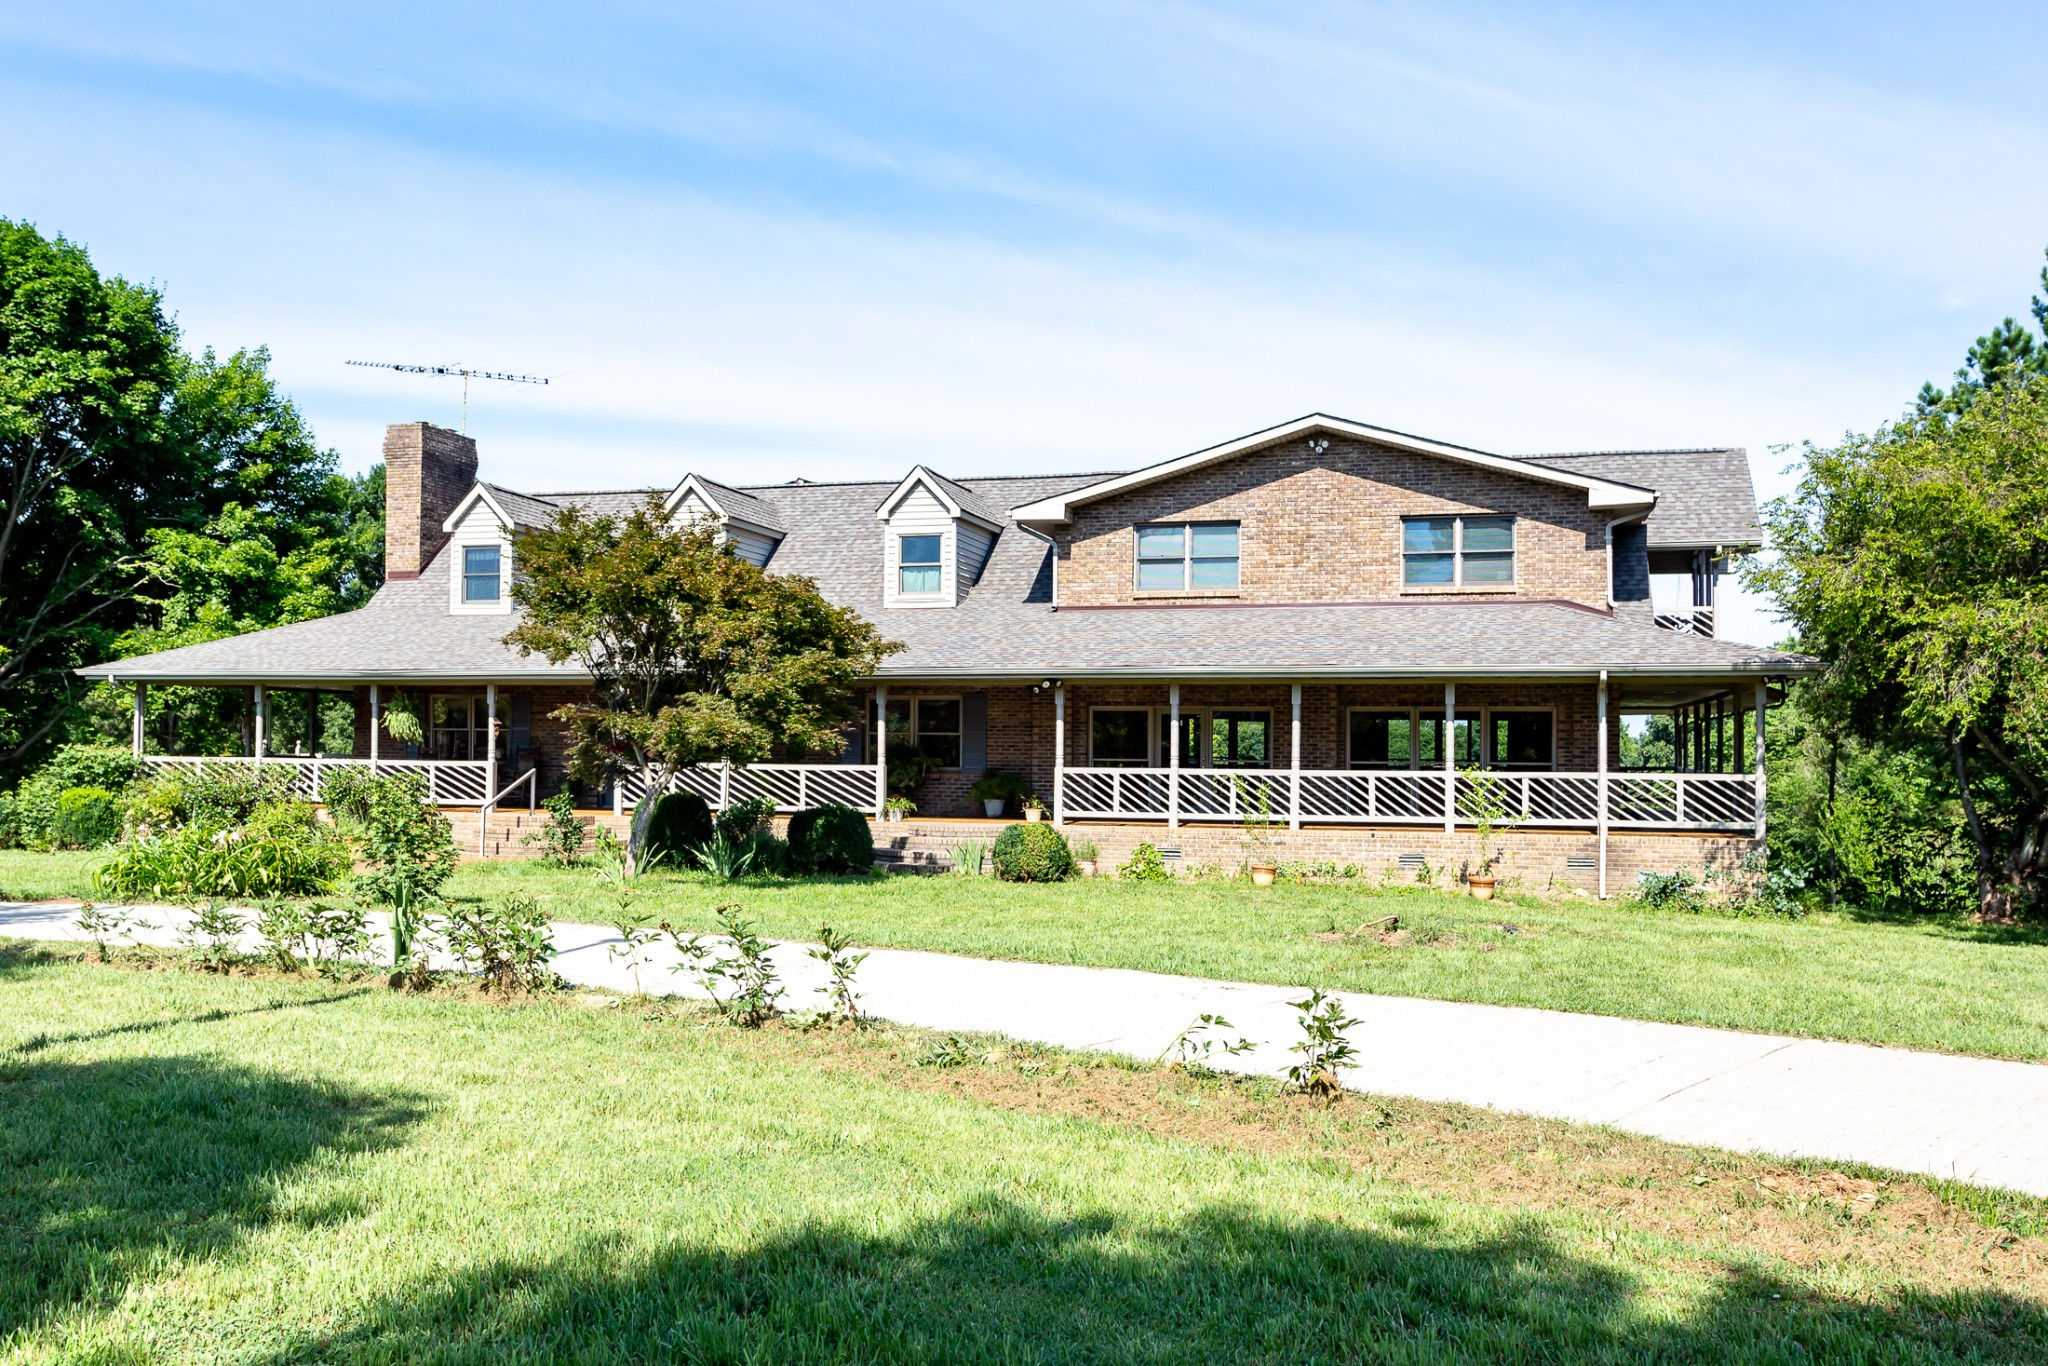 SPACIOUS BRICK HOME ON 5 ACRES IN THE COUNTRY/ALMOST 4800 SQ. FT. ABOVE GROUND PLUS FINISHED BASMENT THAT CAN BE AN EFFICIENCY SUITE/MASSIVE 48 FT COVERED DECKS ON BOTH LEVELS/ALL HARDWOOD AND TILE FLOORS WITH VINYL IN BASEMENT/STOCKED POND/NO HOA/5 MINUTES TO BOAT RAMP ON THE CUMBERLAND/NEW ROOF IN 2019/CIRCLE DRIVE WITH COBBLESTONE DESIGN AND DRIVEWAY SECURITY ALARM/20 MINUTES TO RIVERSIDE DRIVE